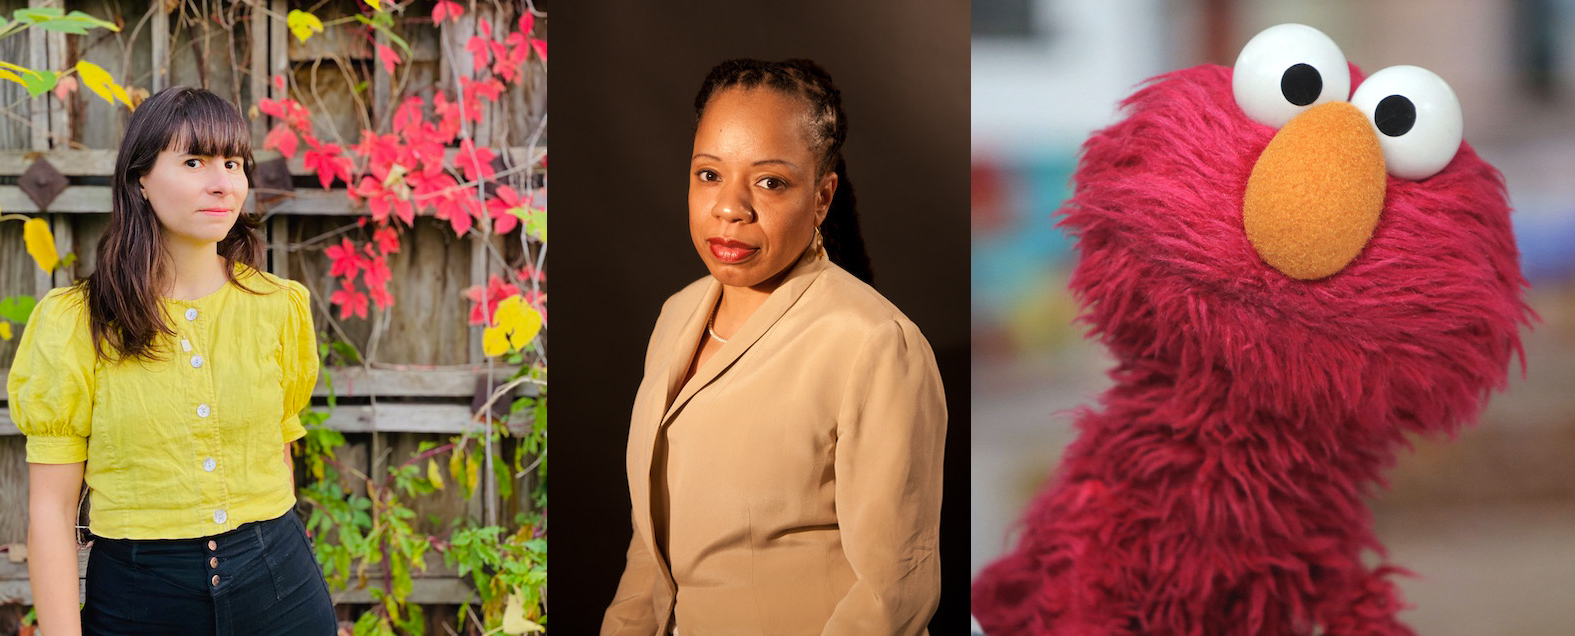 Three author photos in a row: the first shows Ada Smailbegovic standing outside, the next photo is of Tracie Morris, and the last is a picture of Elmo as a visual alias for author Elisabeth Houston